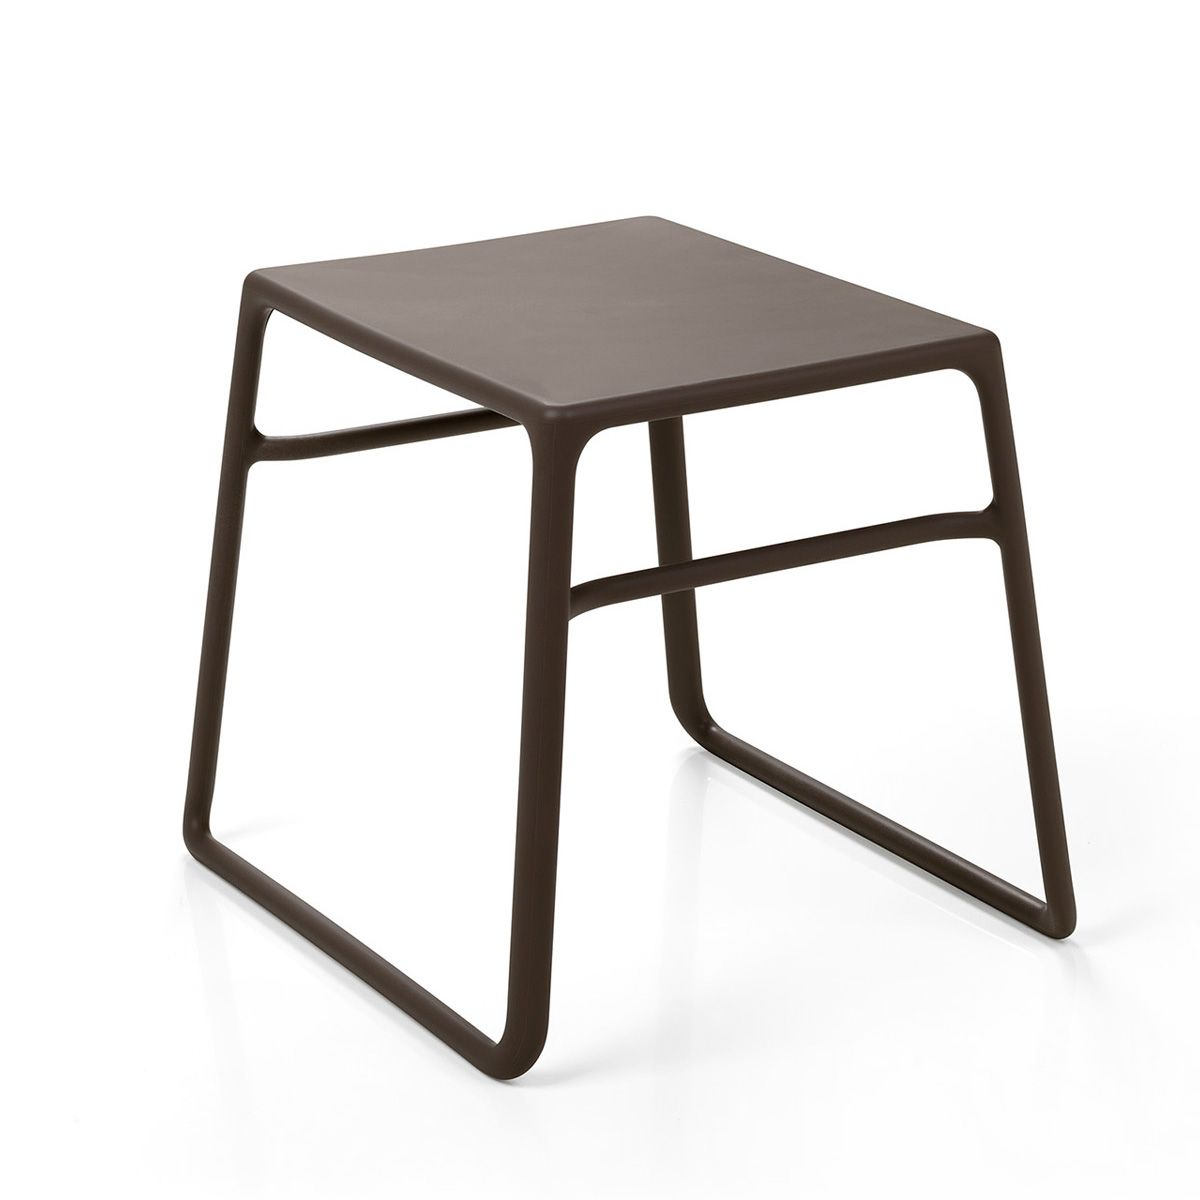 Table basse exterieur design pop nardi zendart design - Table basse exterieur design ...